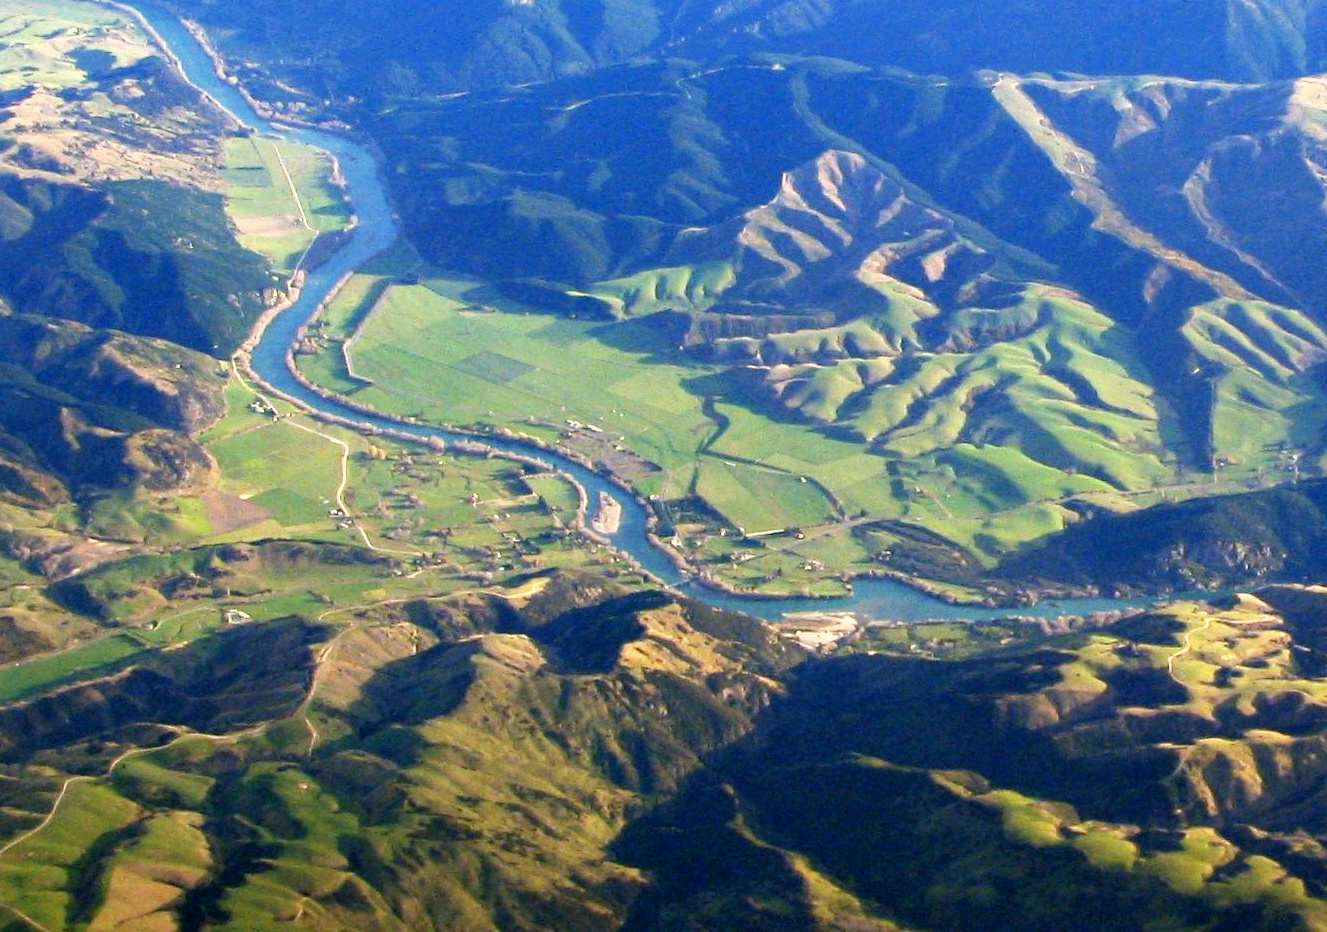 Beaumont, New Zealand aerial photo